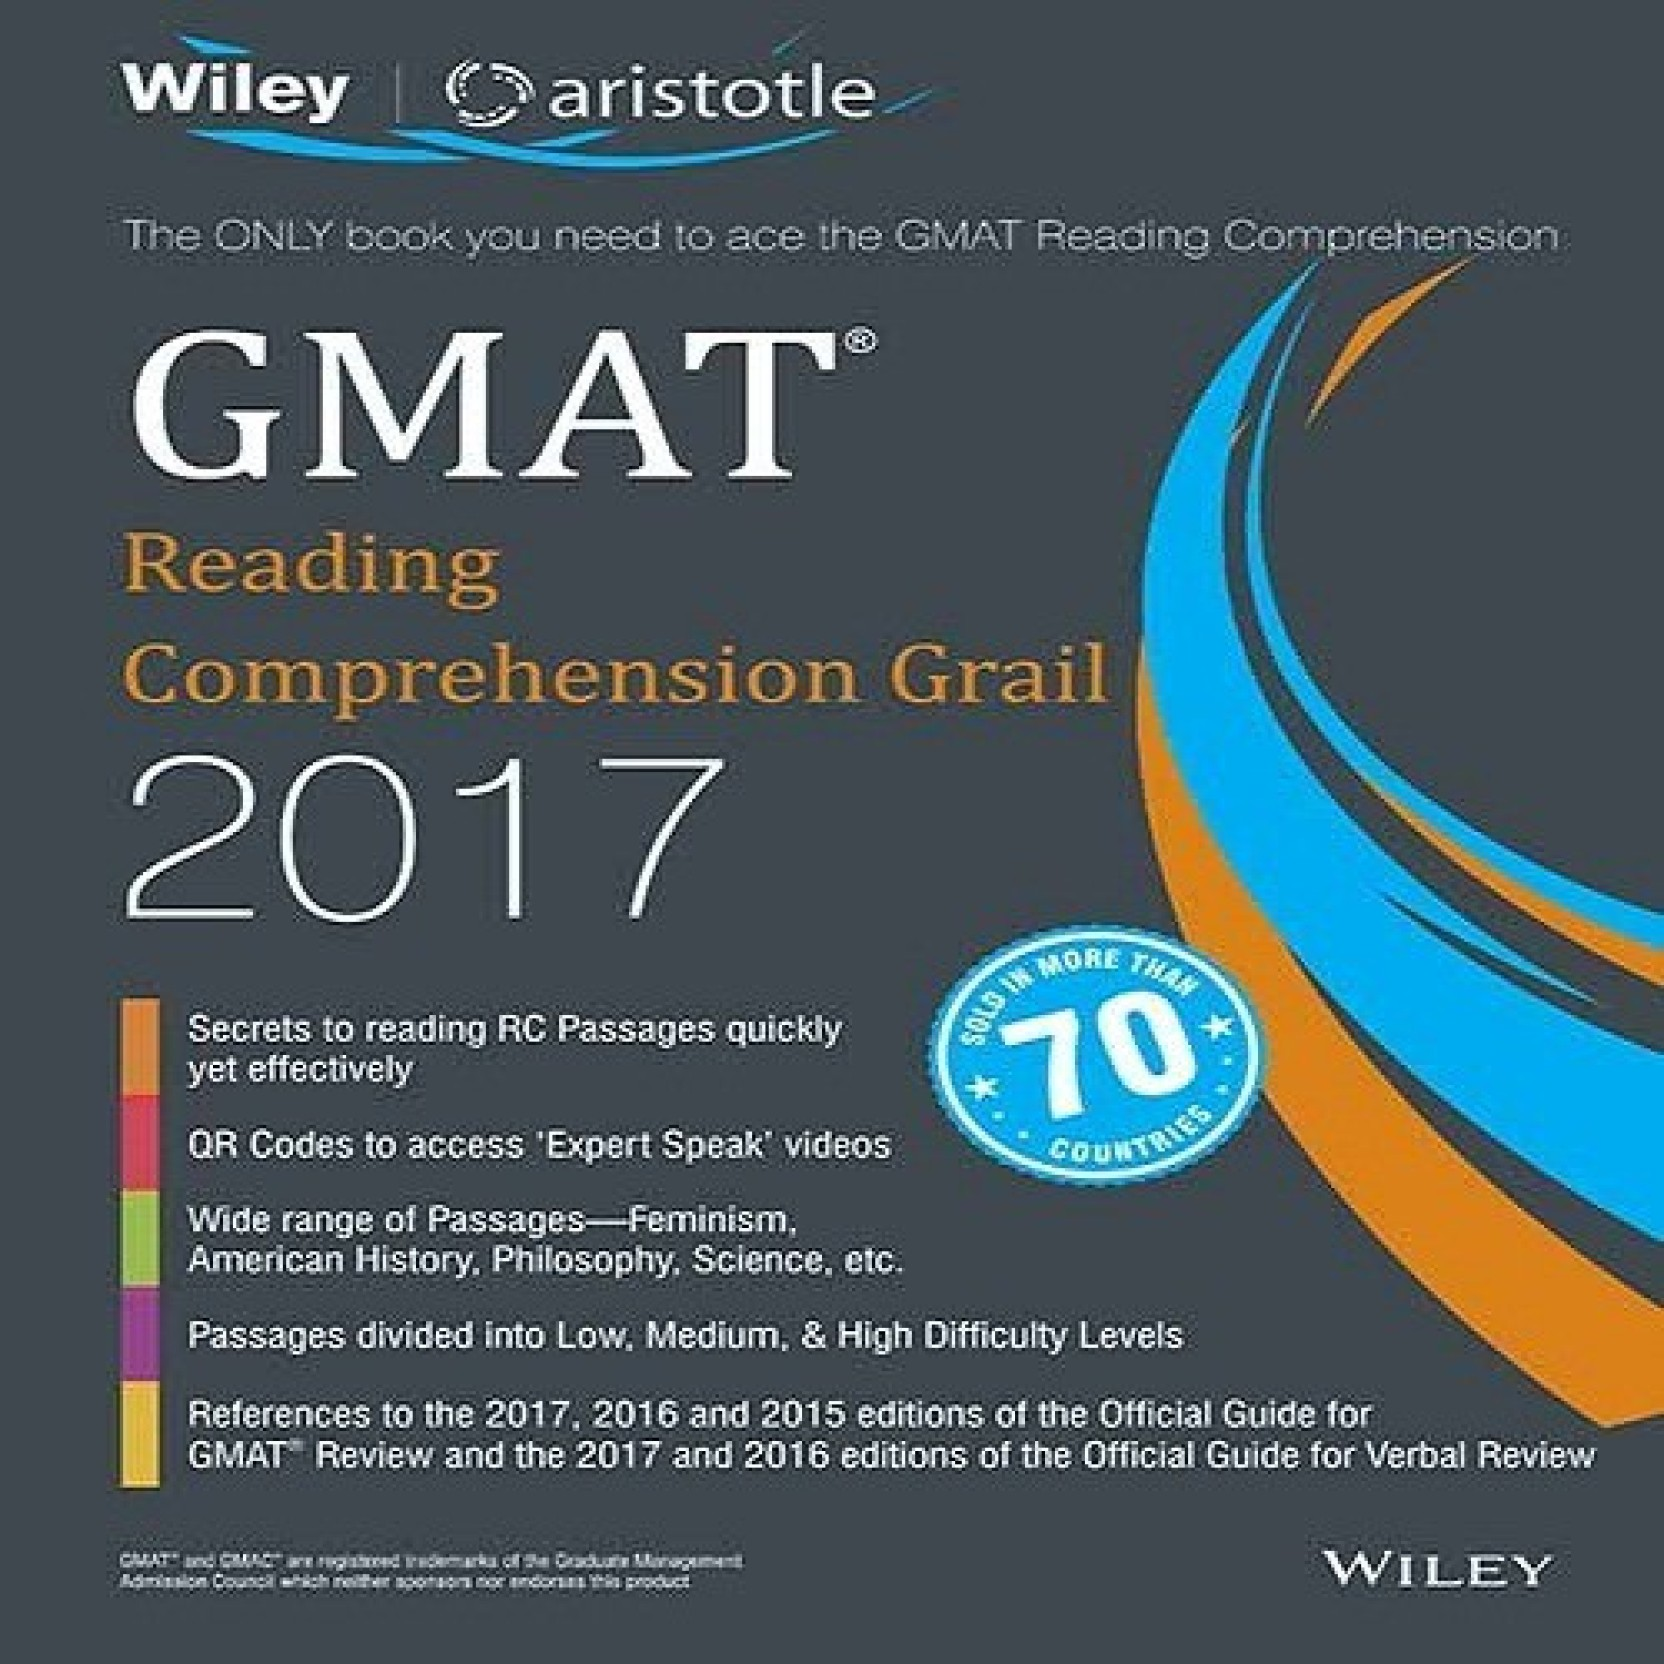 Wiley's GMAT Reading Comprehension Grail 2017 Ist Edition: Buy